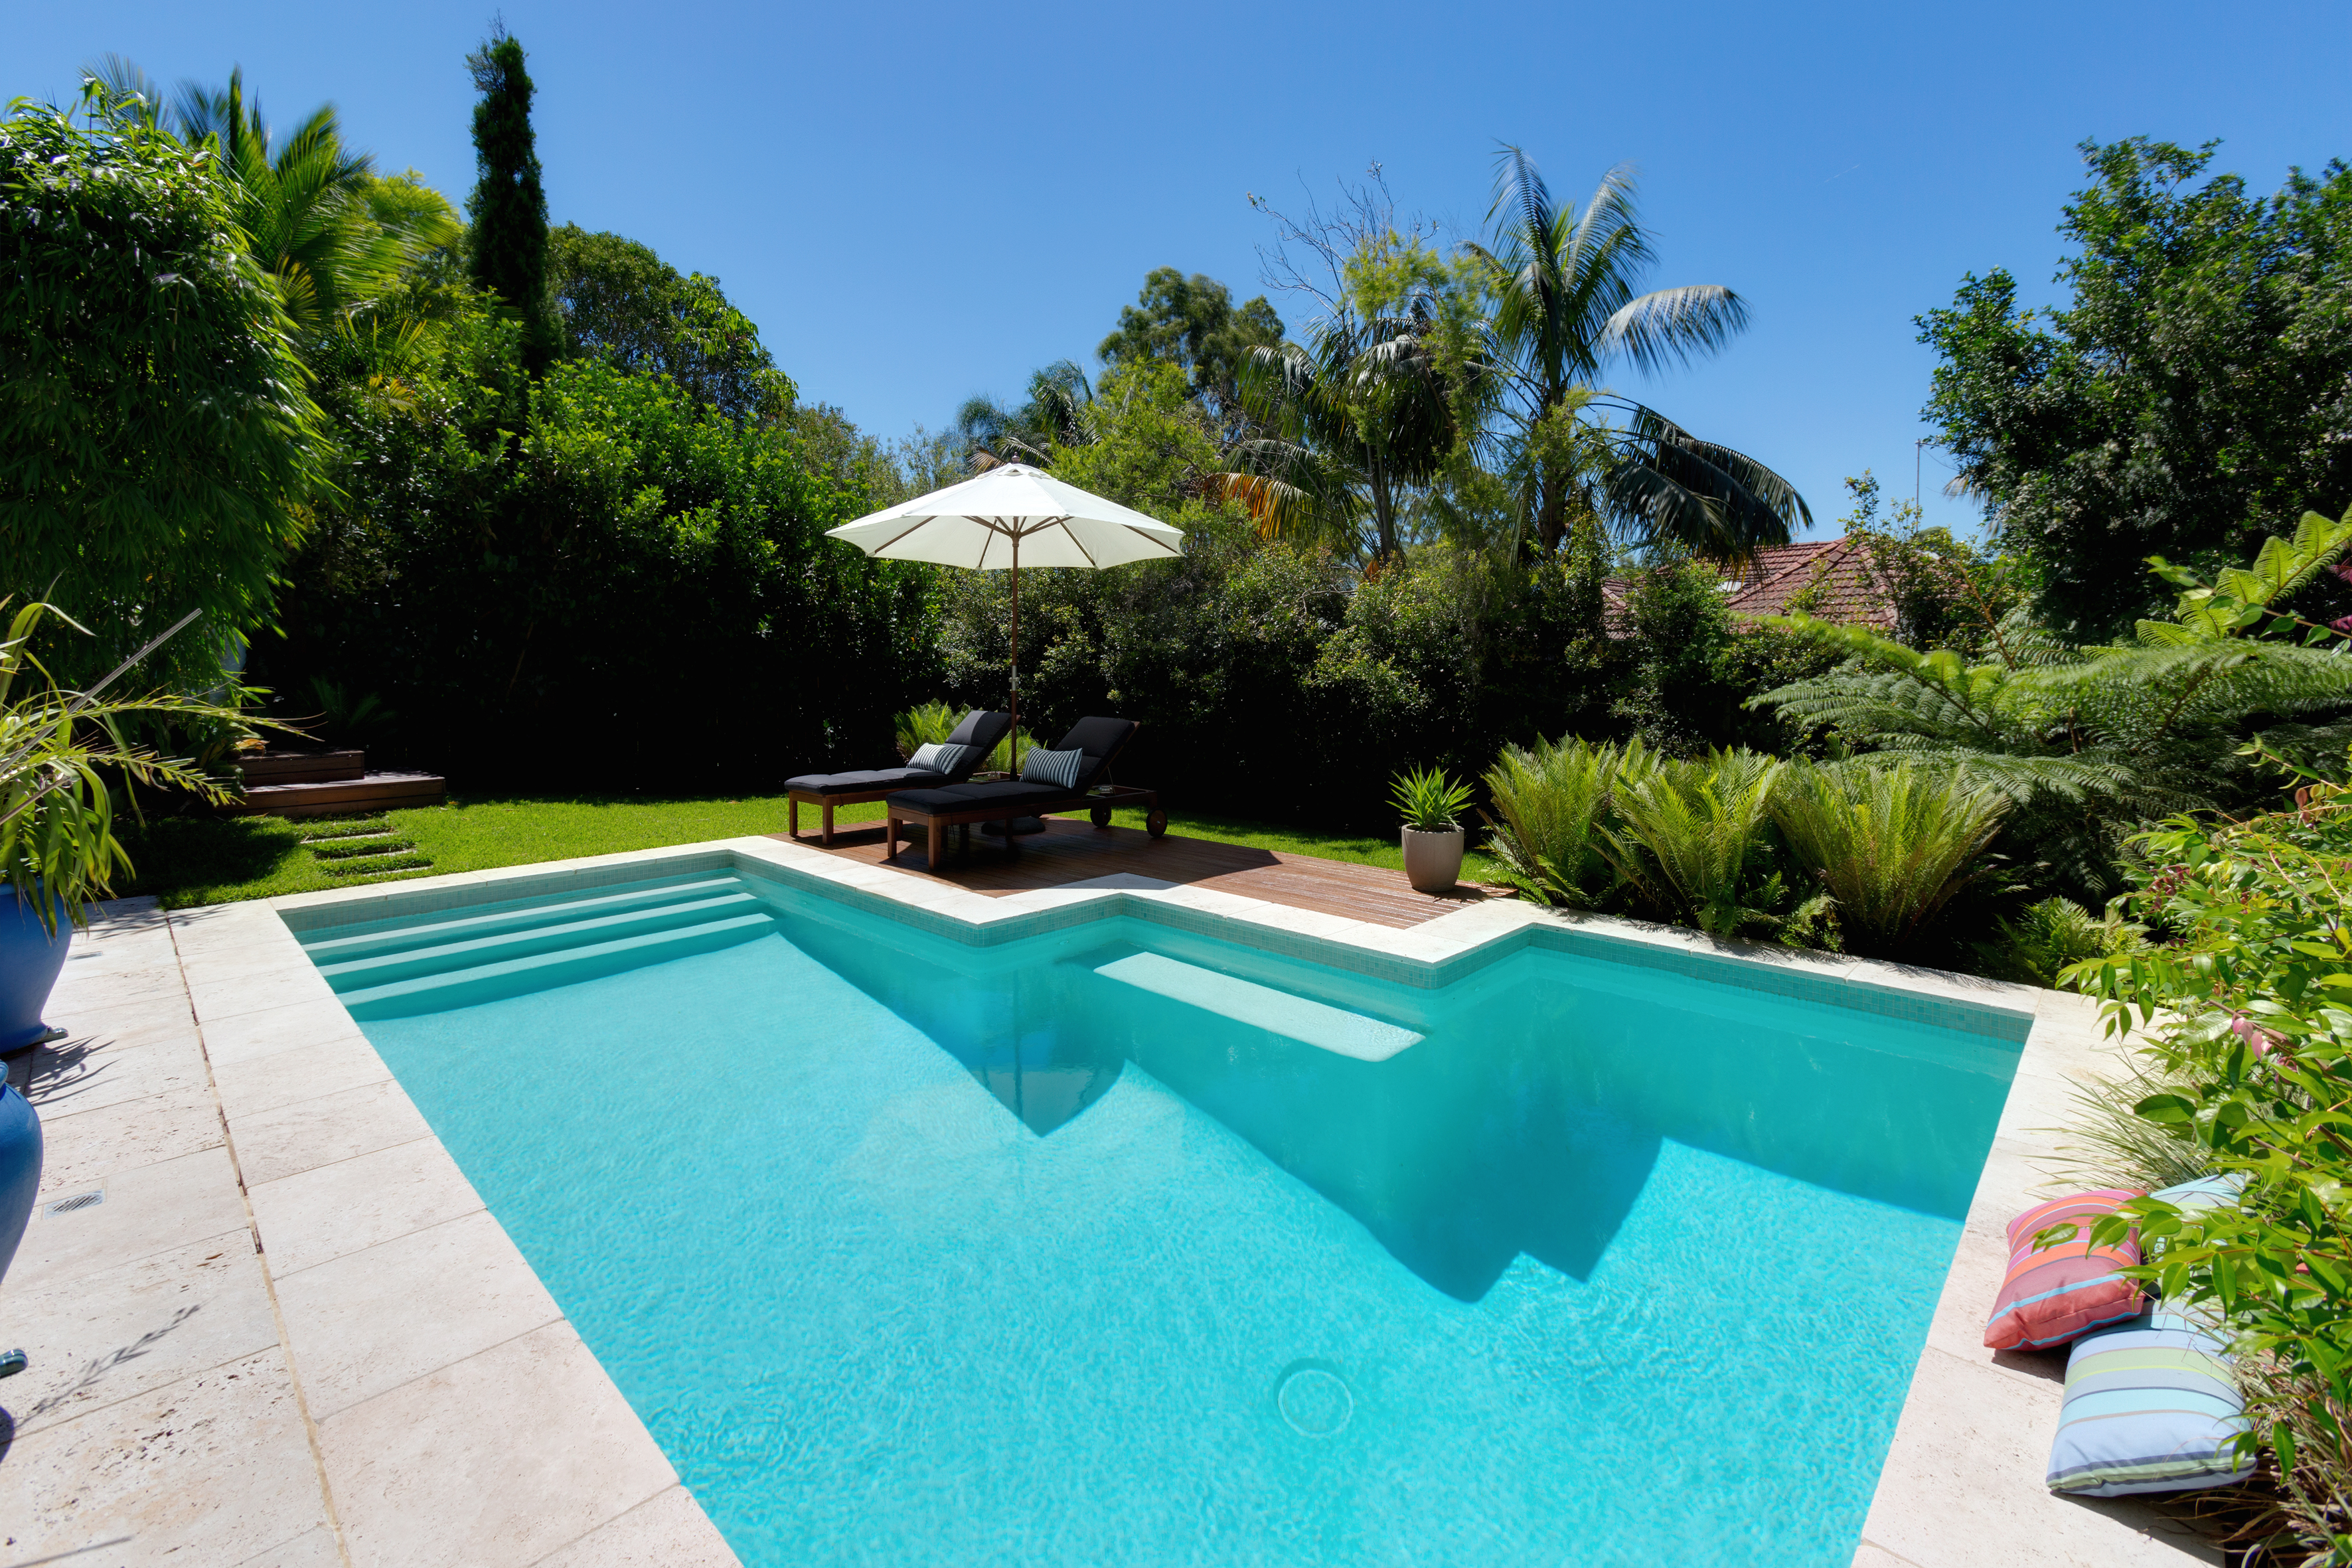 Premier pools sydney pool and outdoor design for Pool design sydney